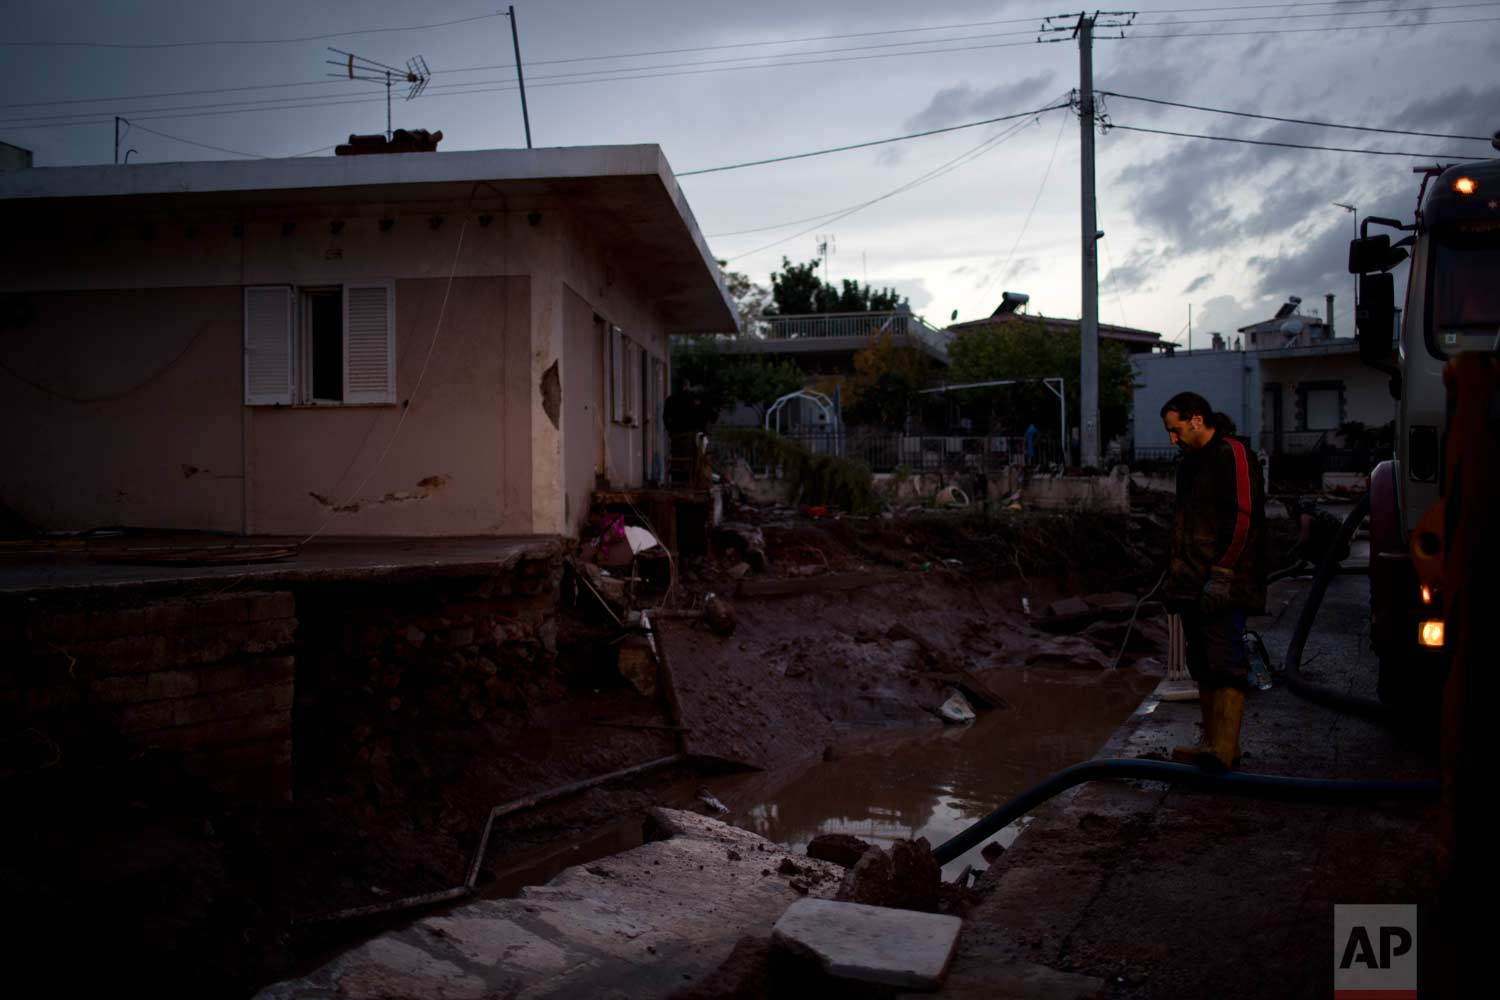 In Thursday, Nov. 16, 2017 photo worker uses a hose to suck up water from a damaged yard of a house in the town of Mandra western Athens following major flash flooding on Wednesday that left at least 21 people dead.(AP Photo/Petros Giannakouris)